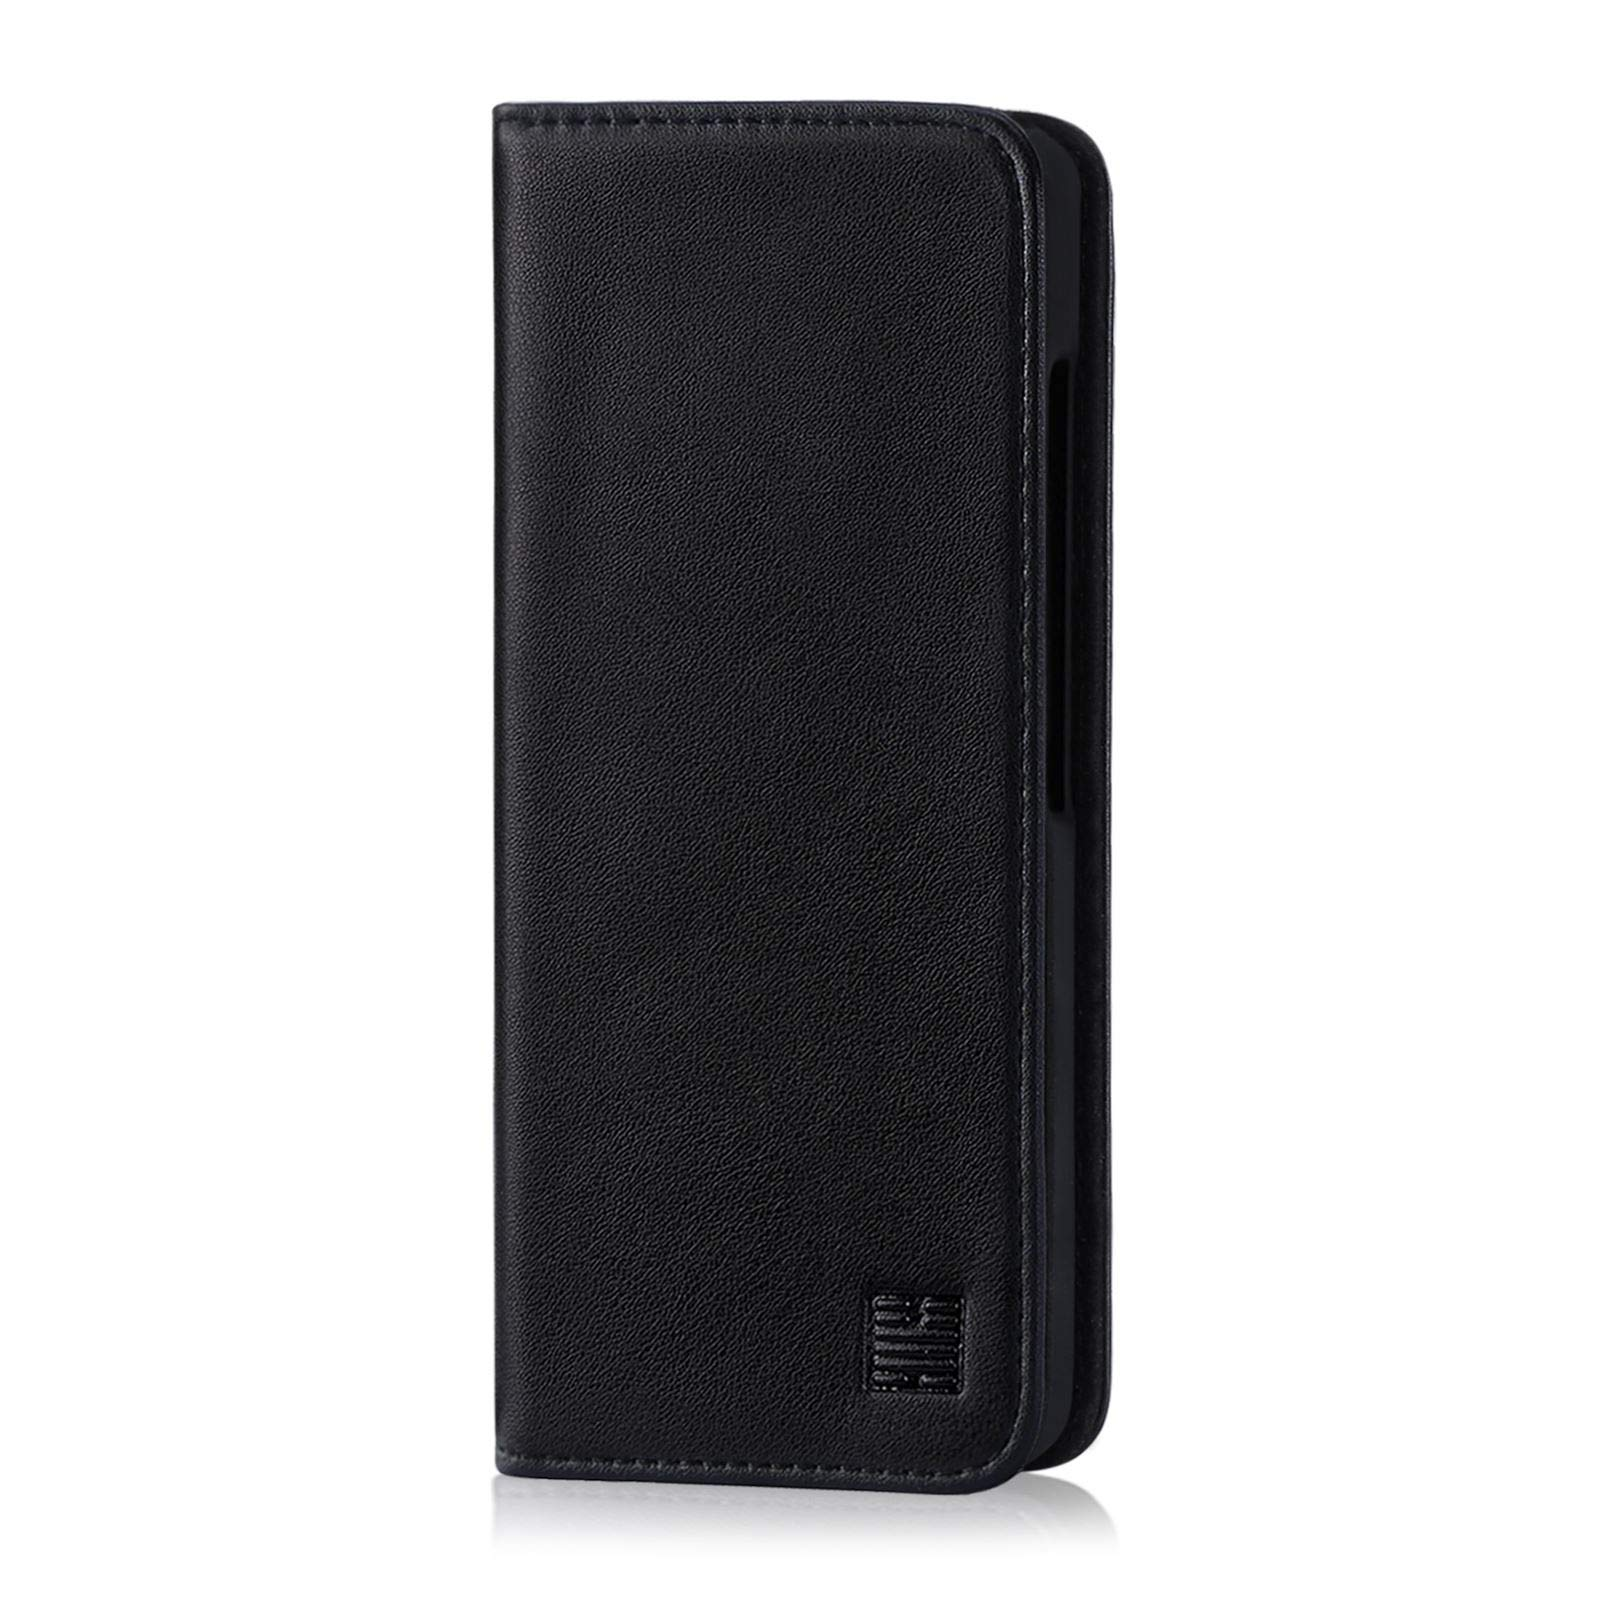 32nd Classic Series - Real Leather Book Wallet Case Cover for Google Pixel 3, Real Leather Design with Card Slot, Magnetic Closure and Built in Stand - Black